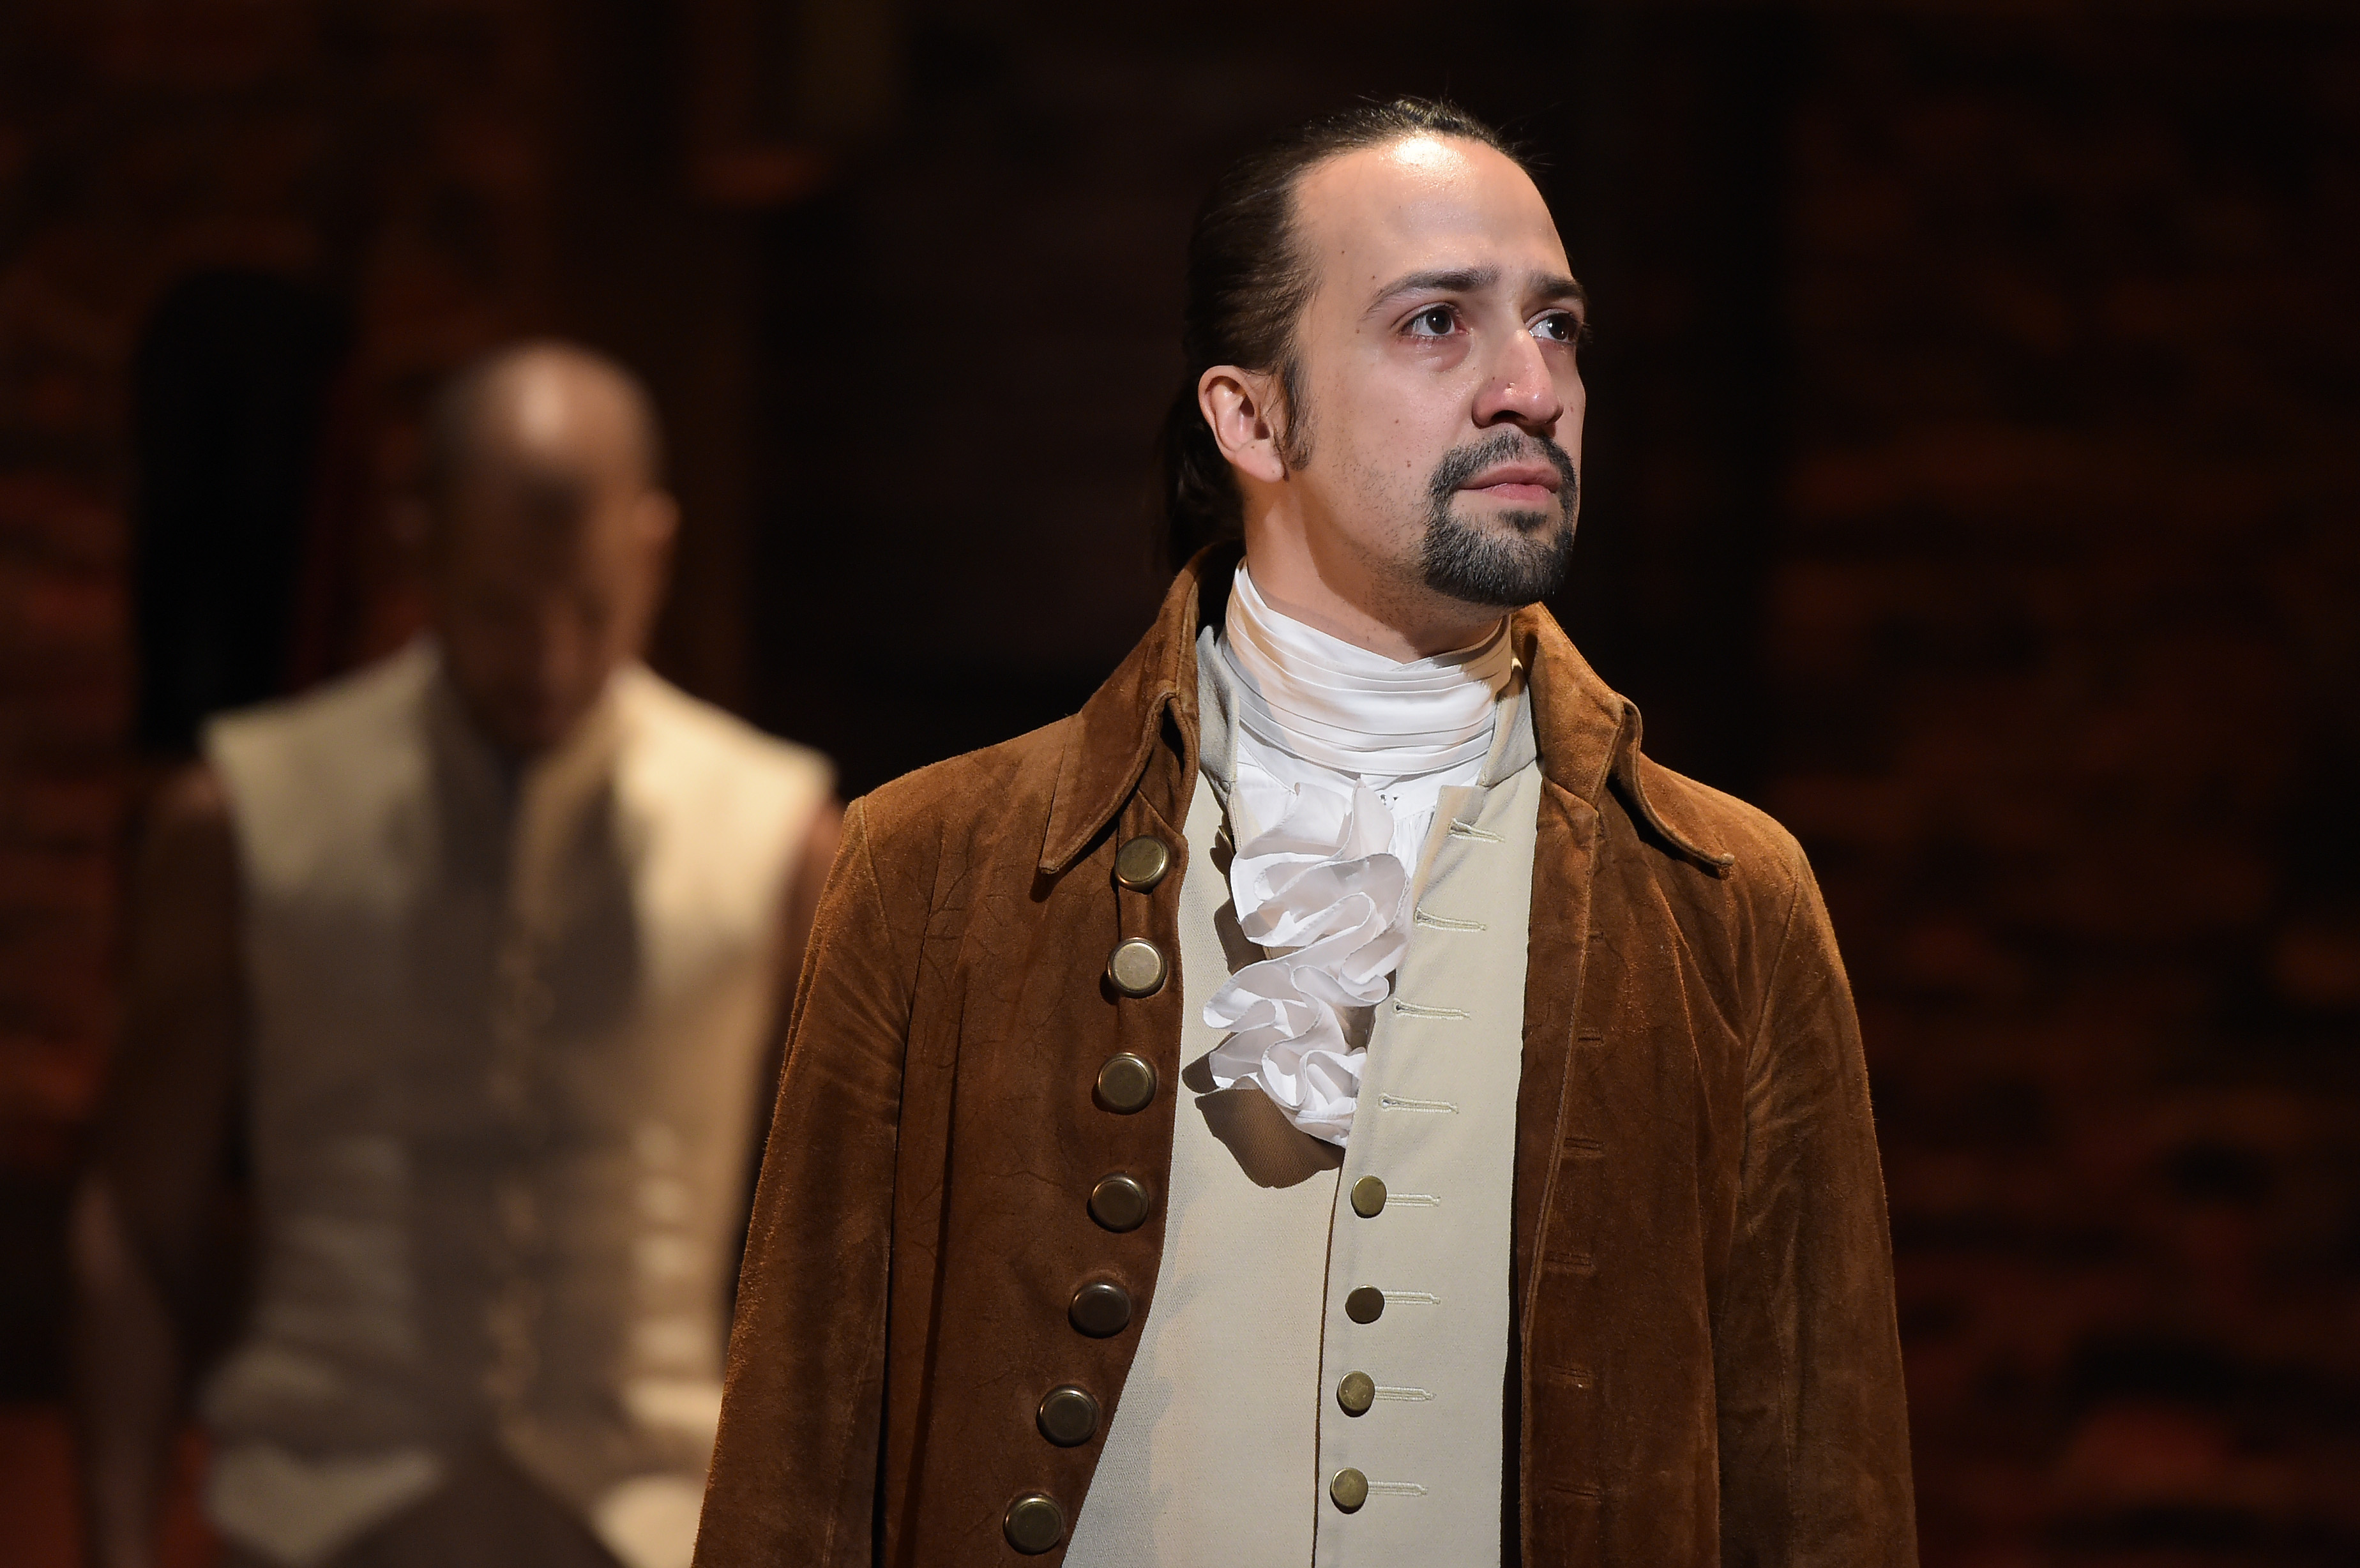 Actor and composer Lin-Manuel Miranda performs a song from  Hamilton  at the 58th GRAMMY Awards at Richard Rodgers Theater on Feb. 15, 2016 in New York City